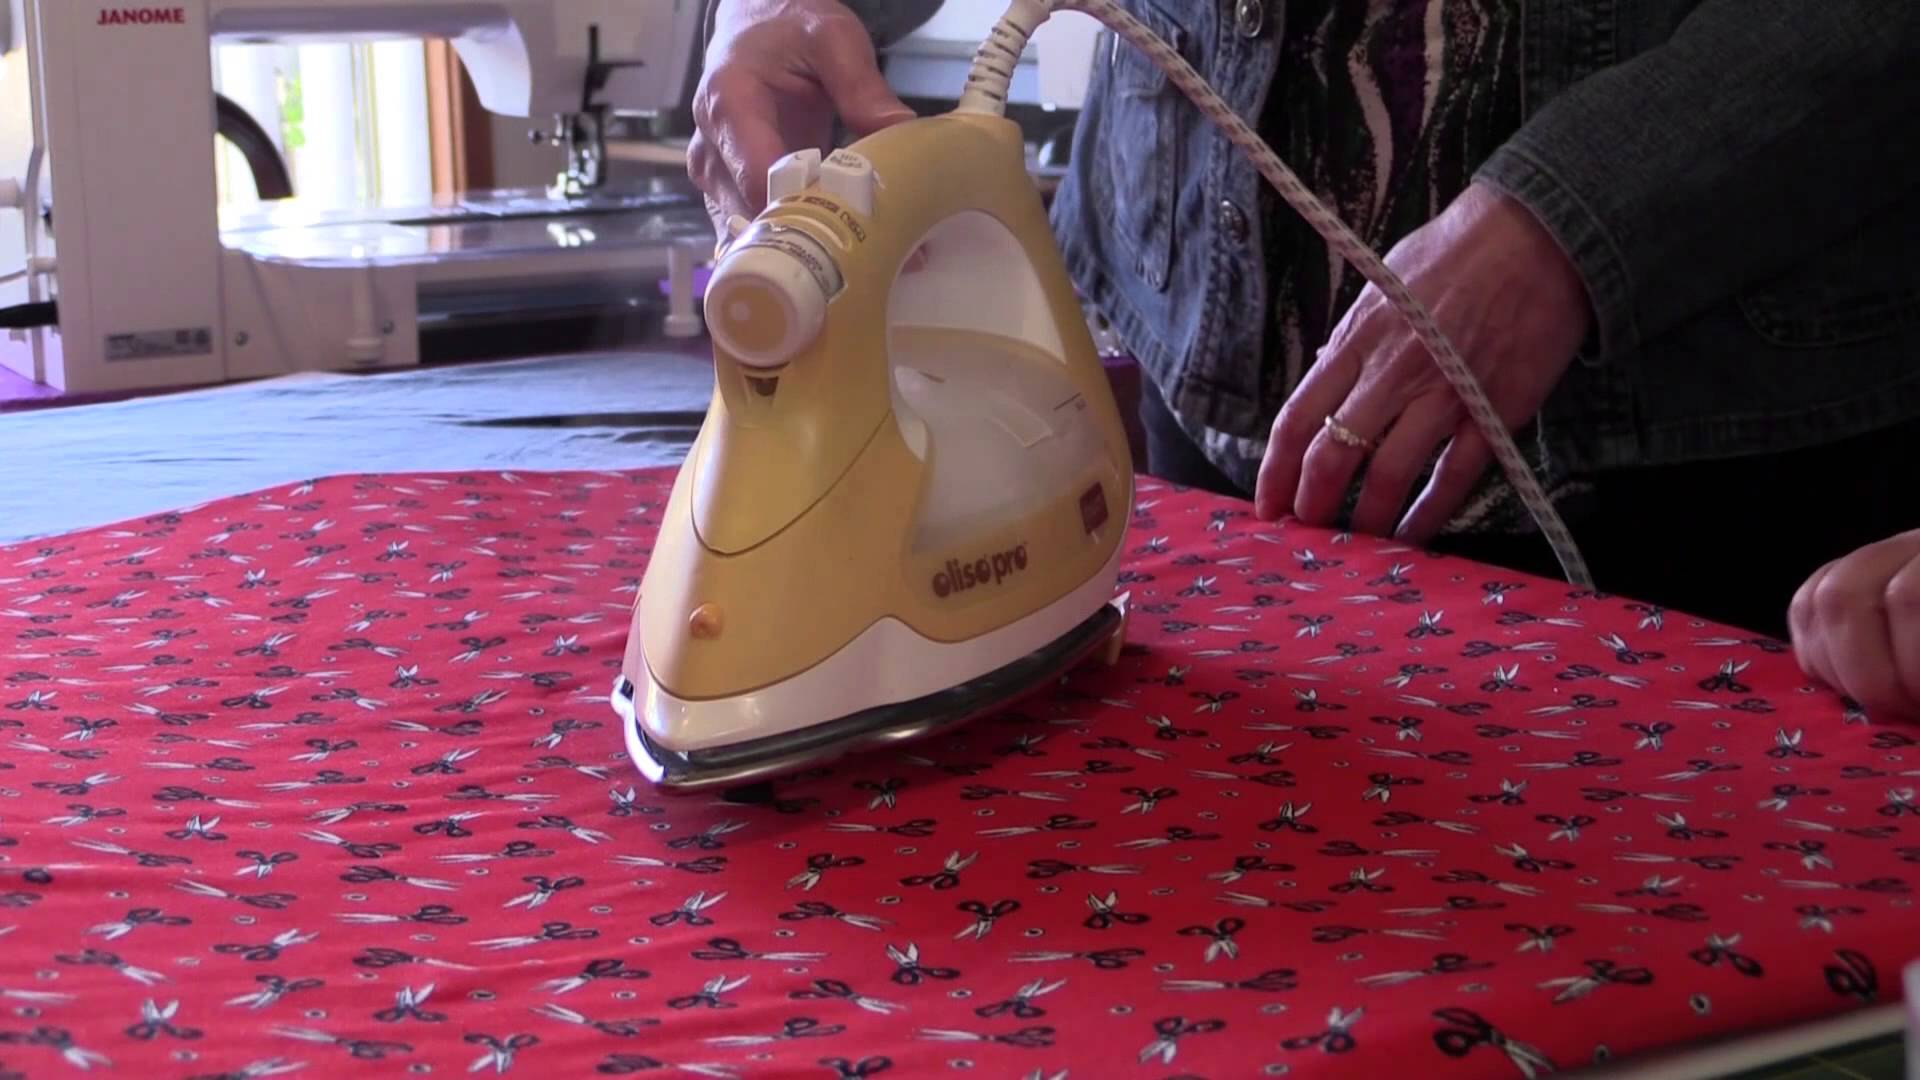 Oliso Pro Smart Iron Review and Demonstration